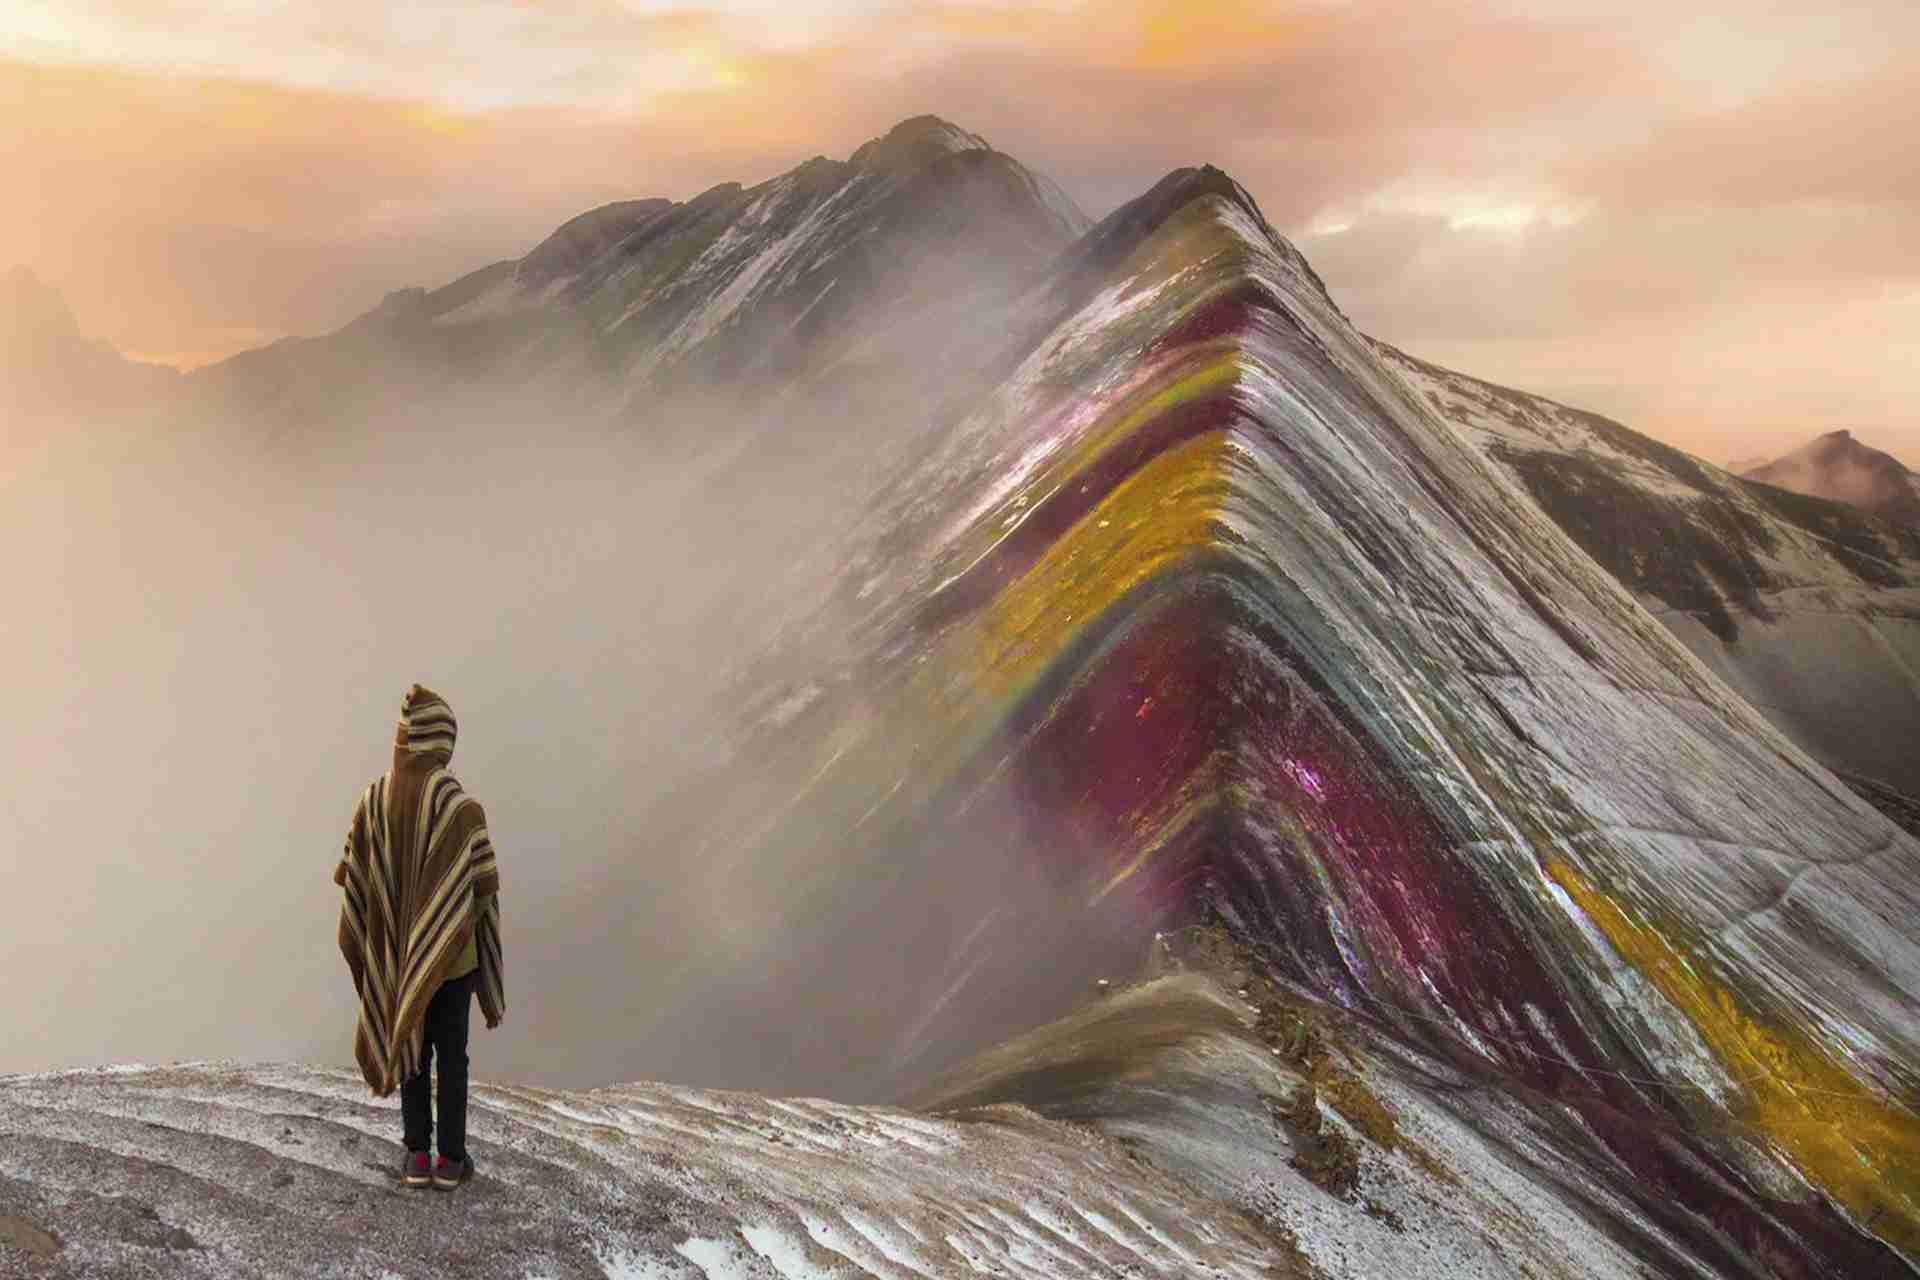 Tour Rainbow Mountain 1 day - Inca Trail Salkantay Trek